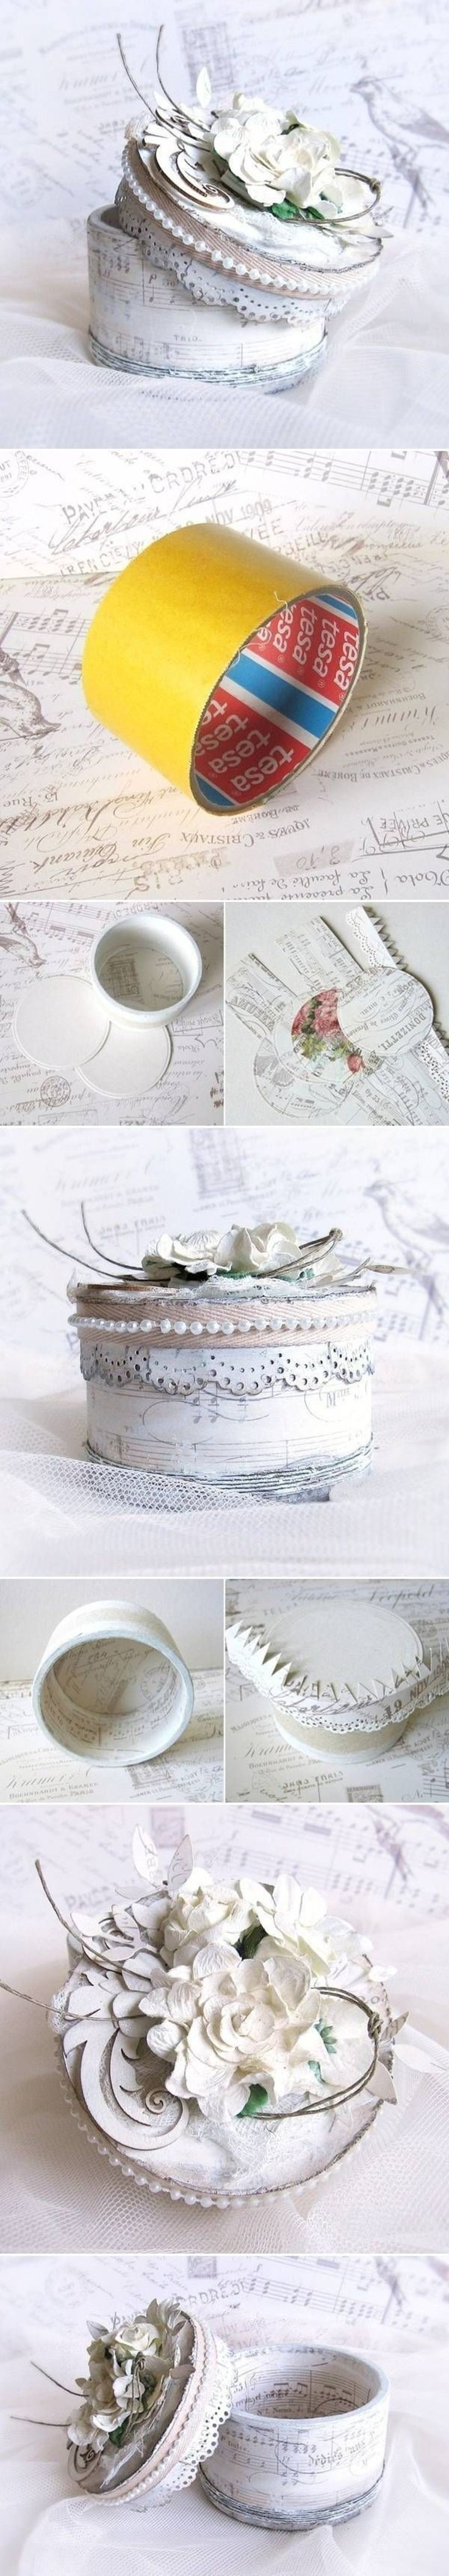 27 #DIY Trinket #Boxes to Keep Your #Bling Organized ...